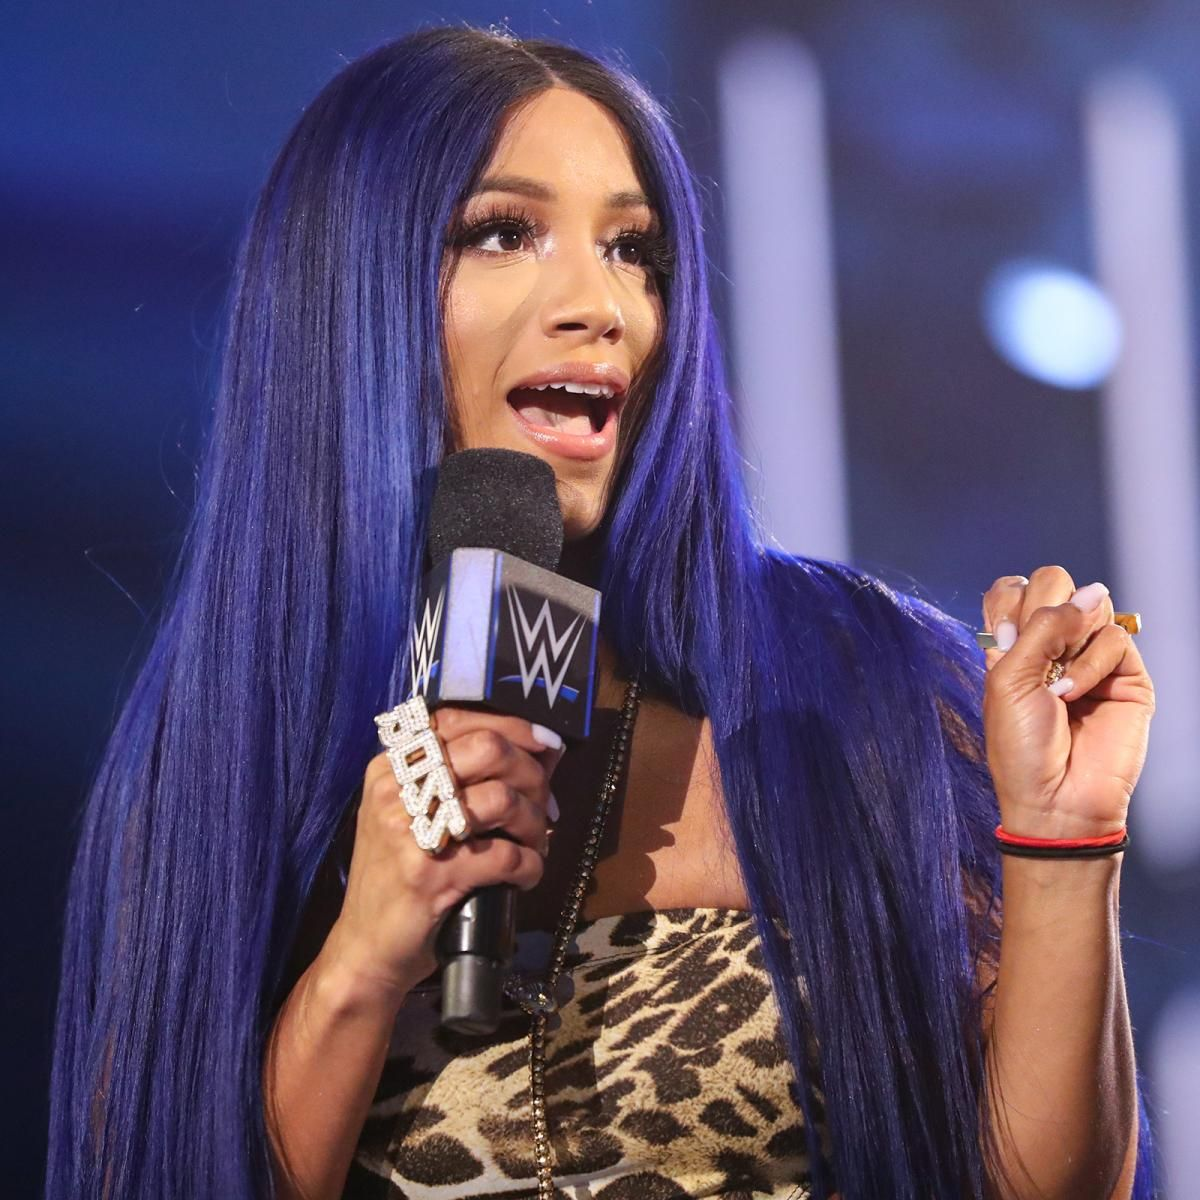 Photos Don T Miss These Incredible Images From The Blue Brand In 2020 Wwe Sasha Banks Sasha Bank Raw Women S Champion